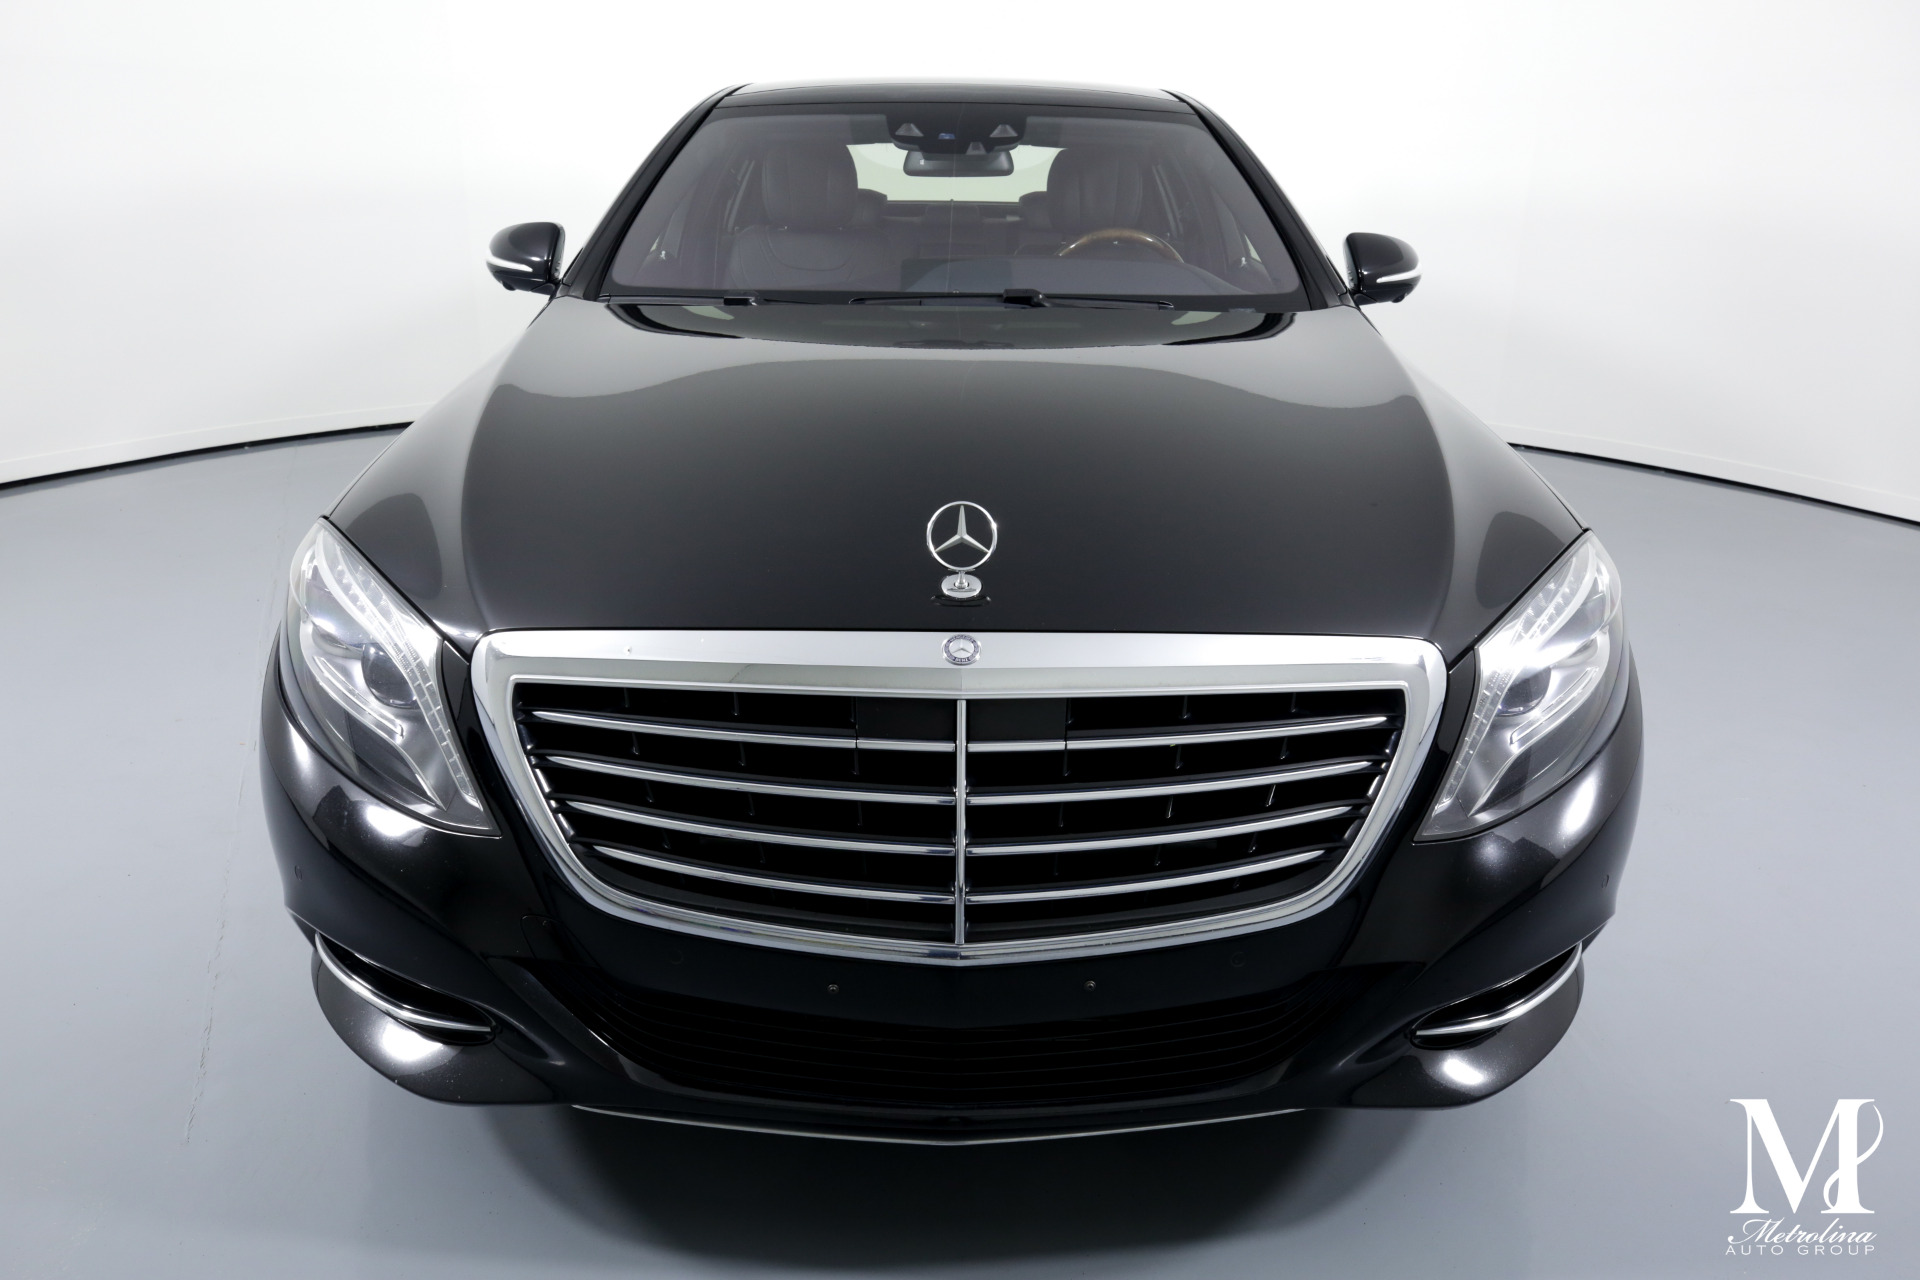 Used 2014 Mercedes-Benz S-Class S 550 for sale $38,456 at Metrolina Auto Group in Charlotte NC 28217 - 3